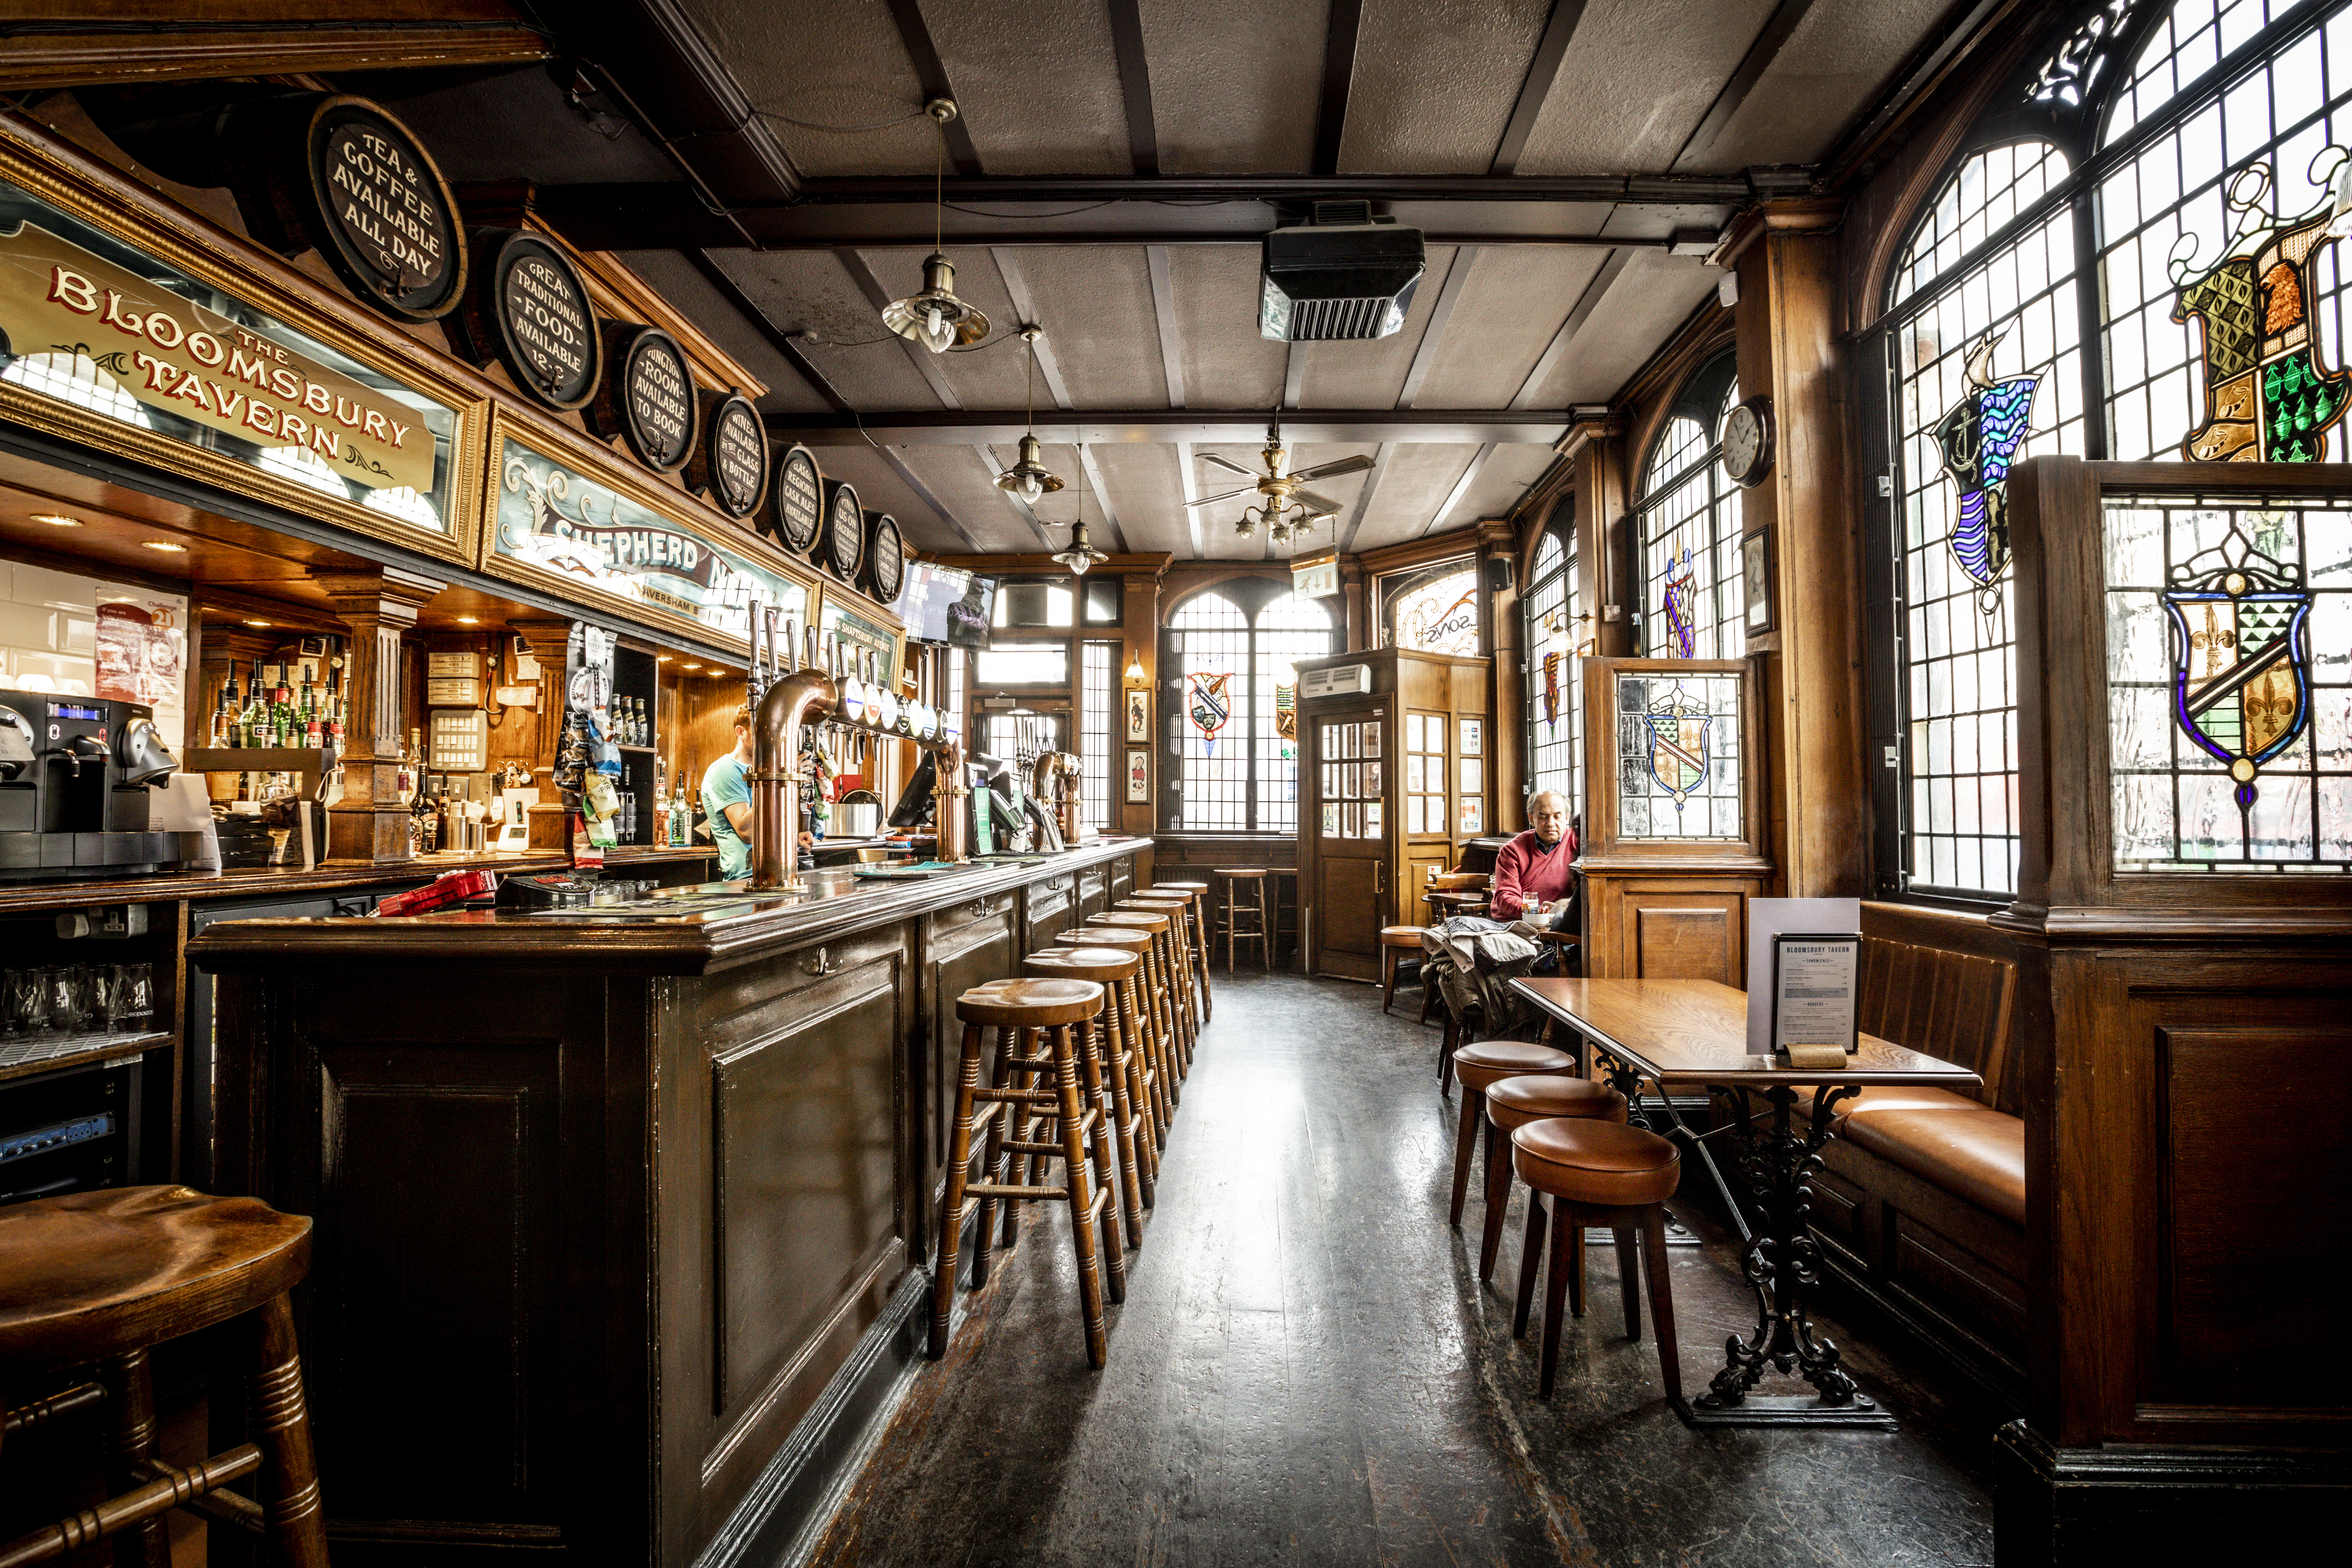 Bloomsbury Tavern, London